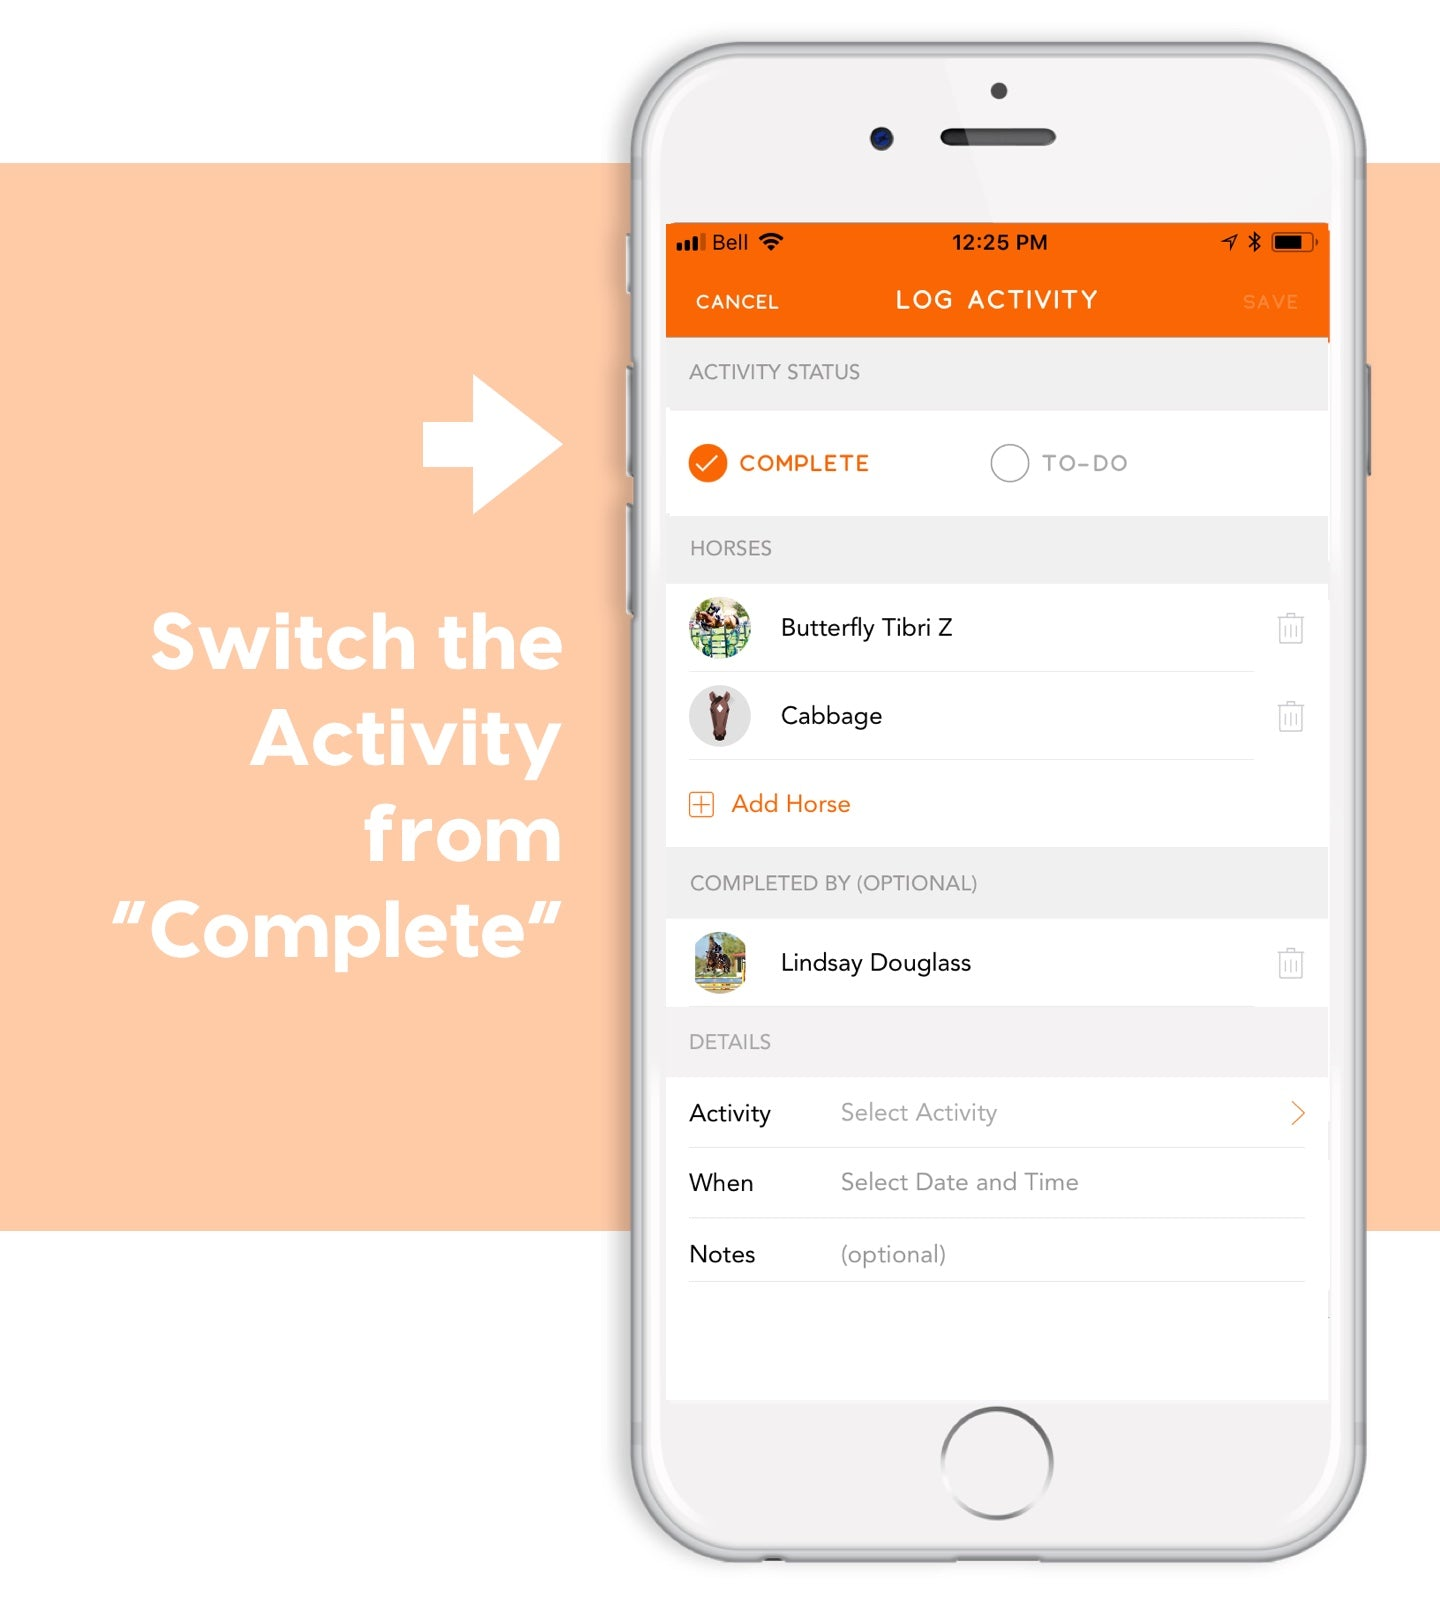 switch activity from complete in ponyapp